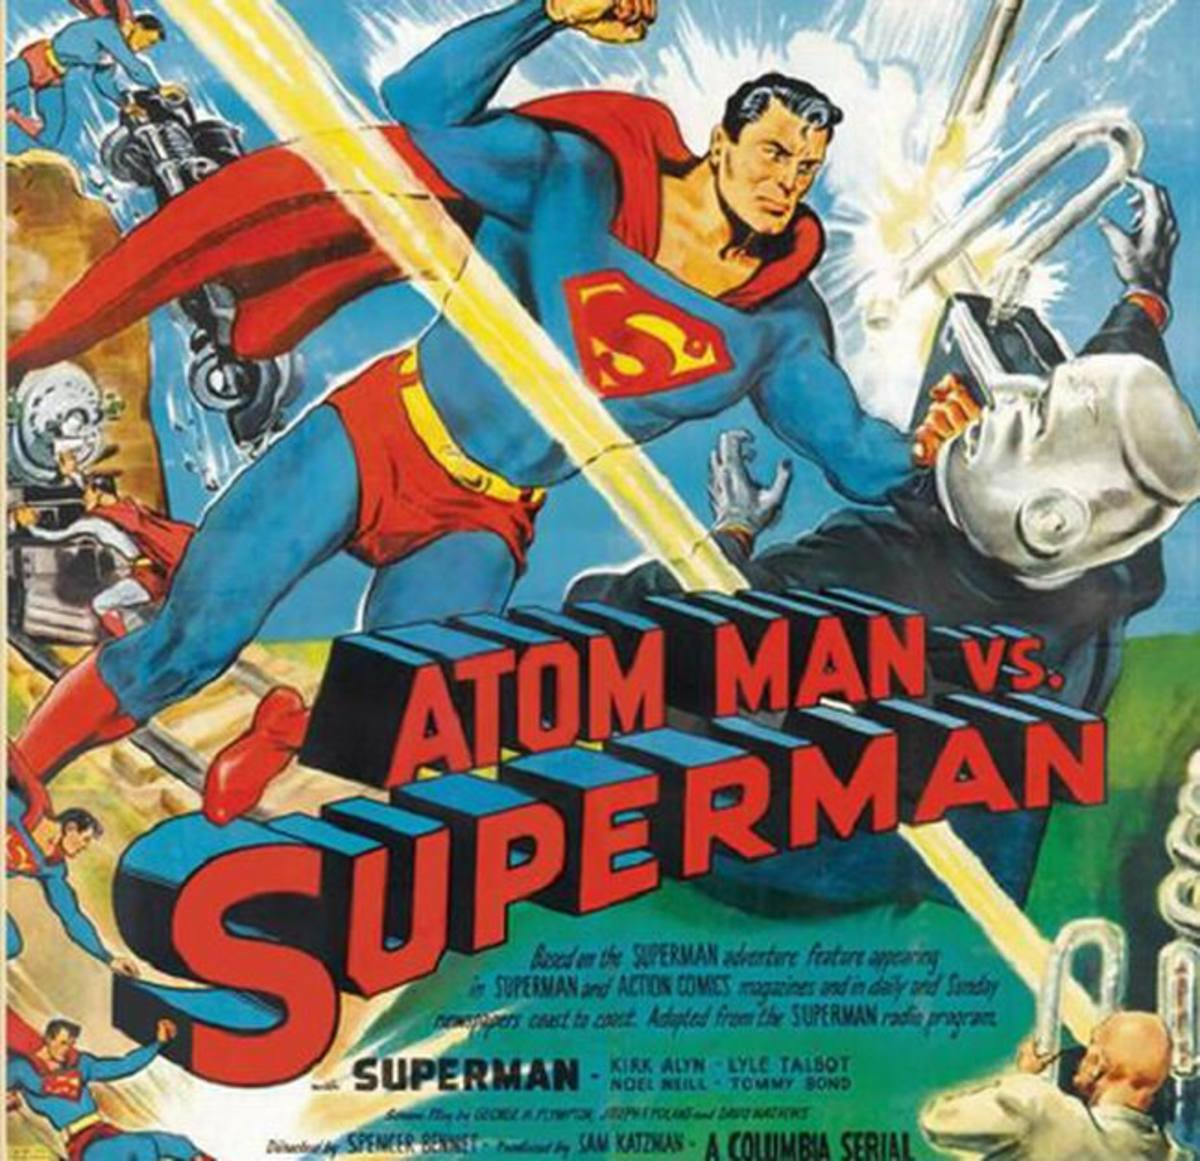 Atom Man vs Superman (1950) poster